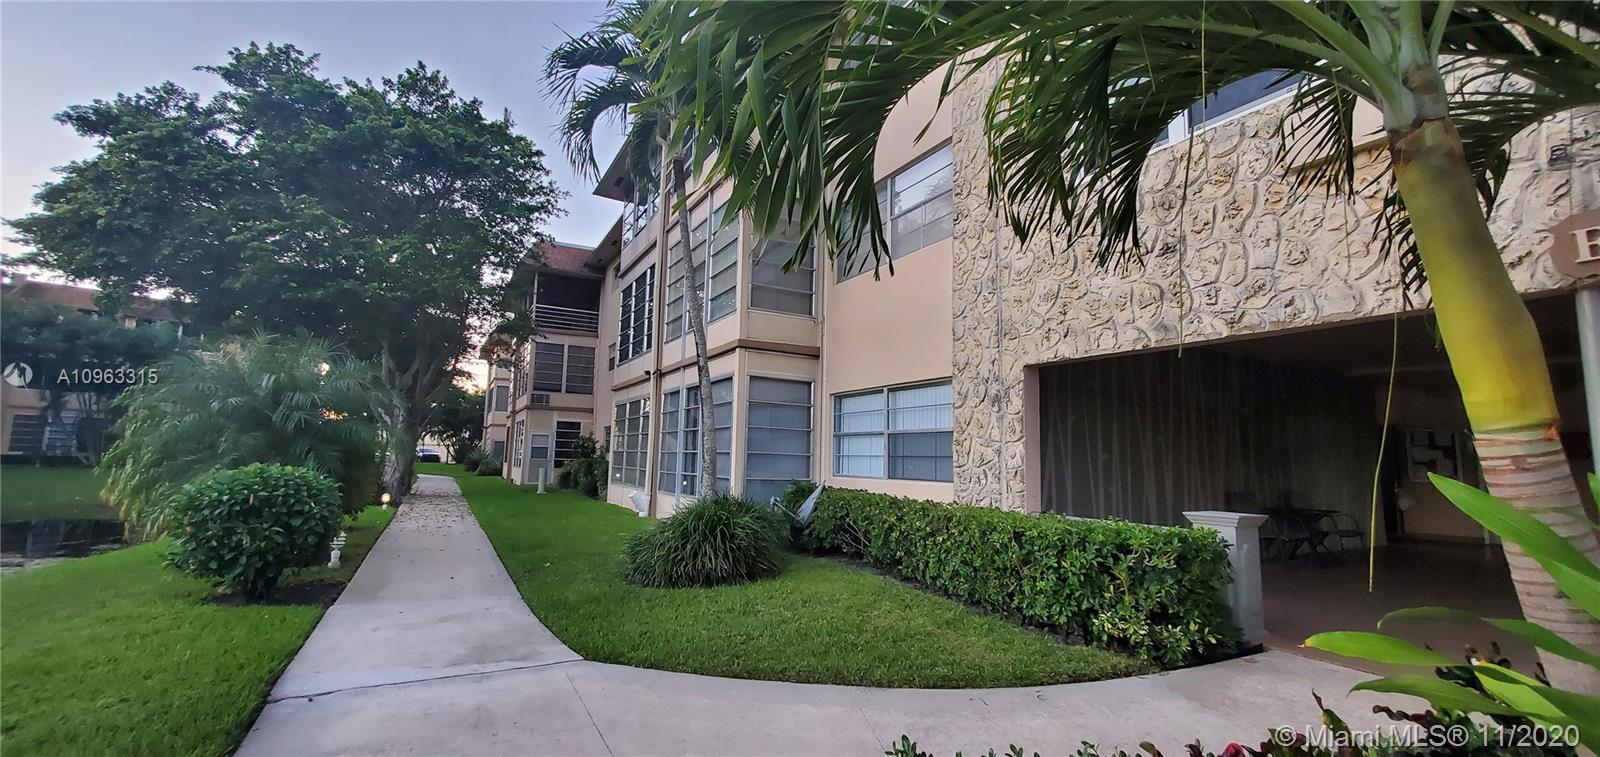 One bedroom condo, located on the first floor, recently renovated through out, this is a 1 bedroom and bathroom with a den/office spacious kitchen, living, family and patio area with a lake view.